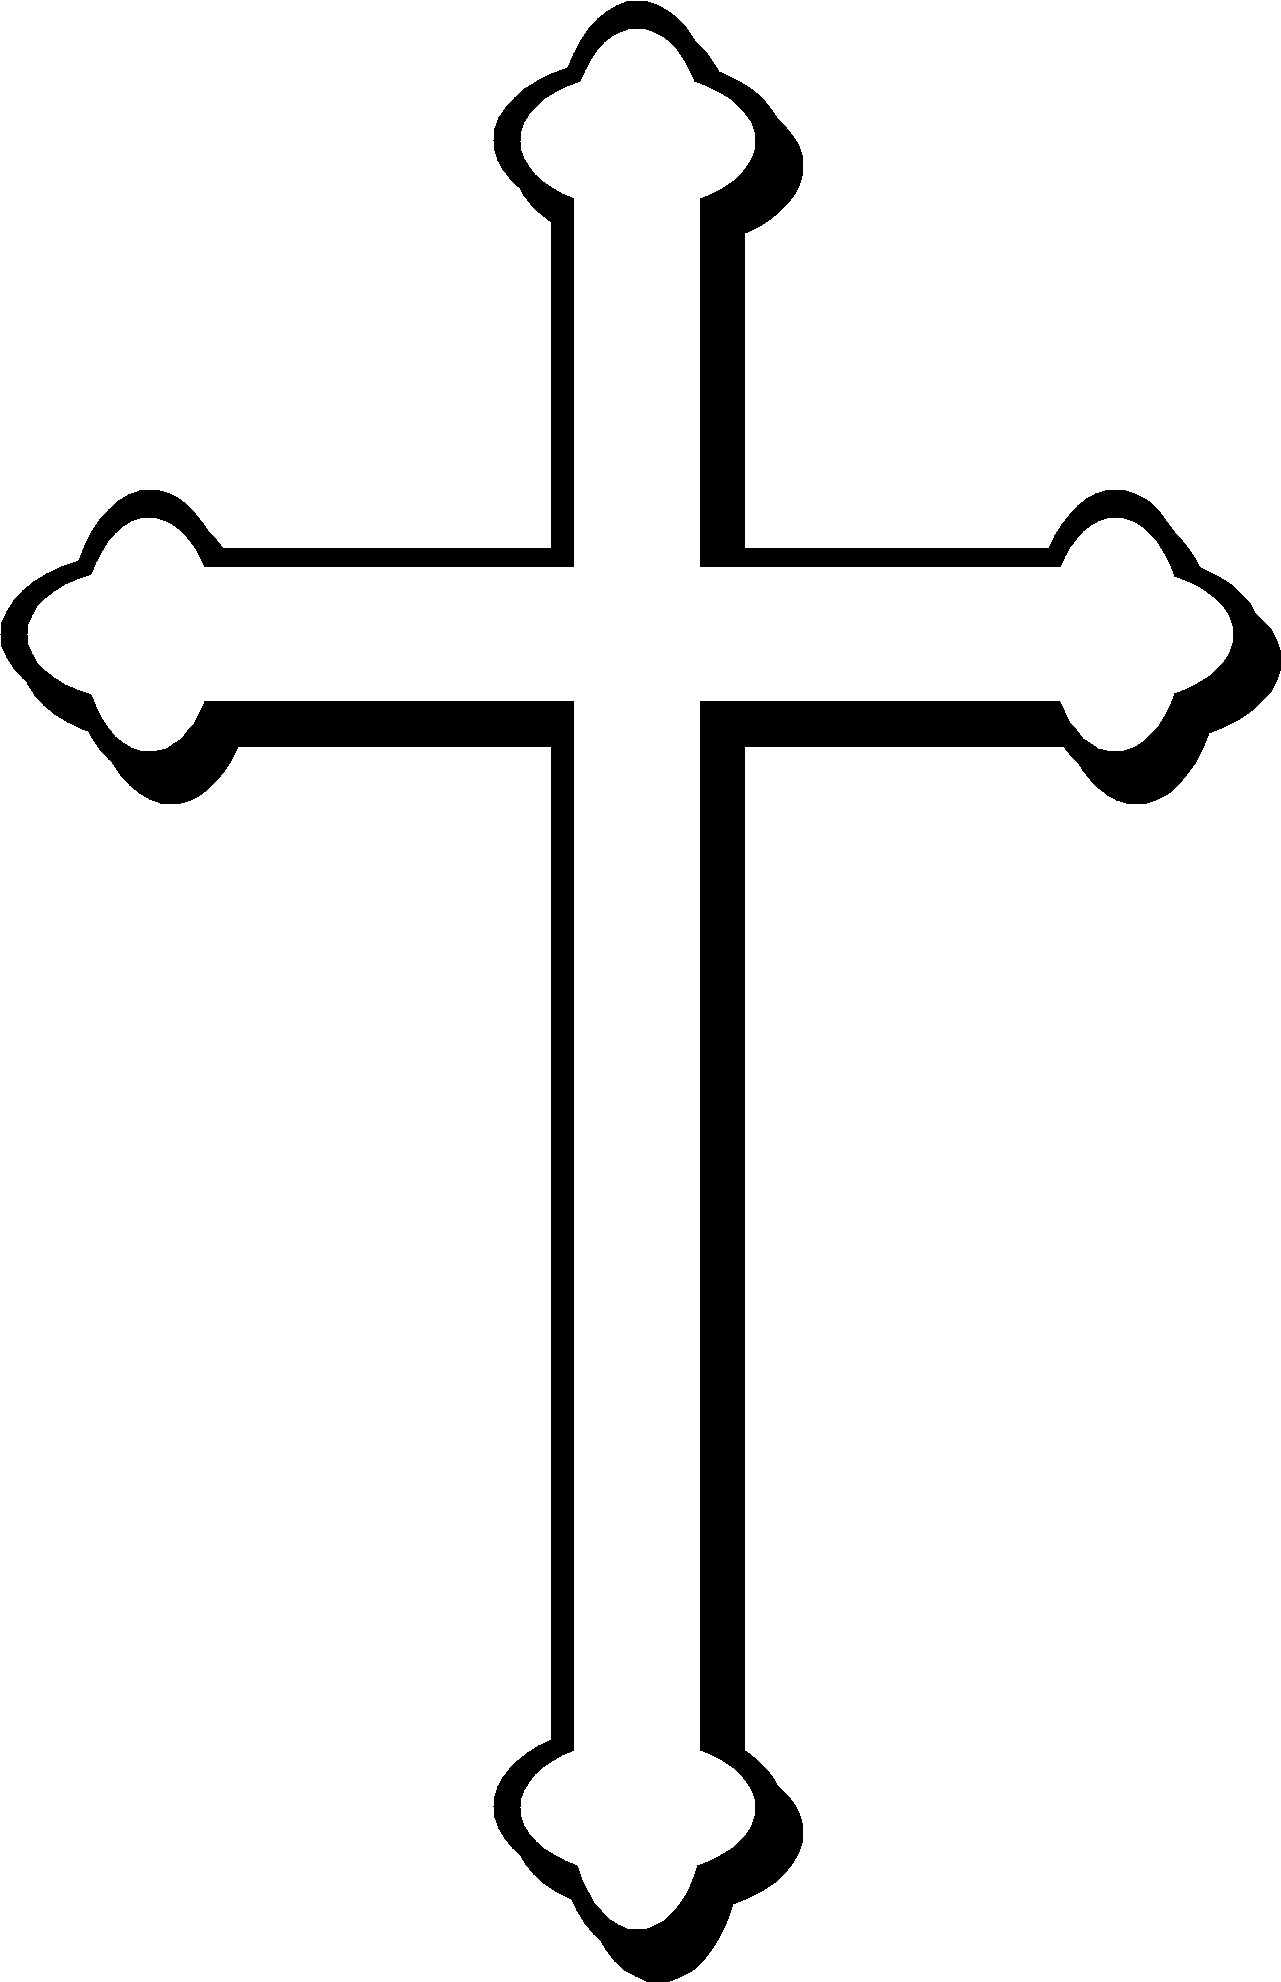 Free Christian Symbols Cliparts, Download Free Clip Art.